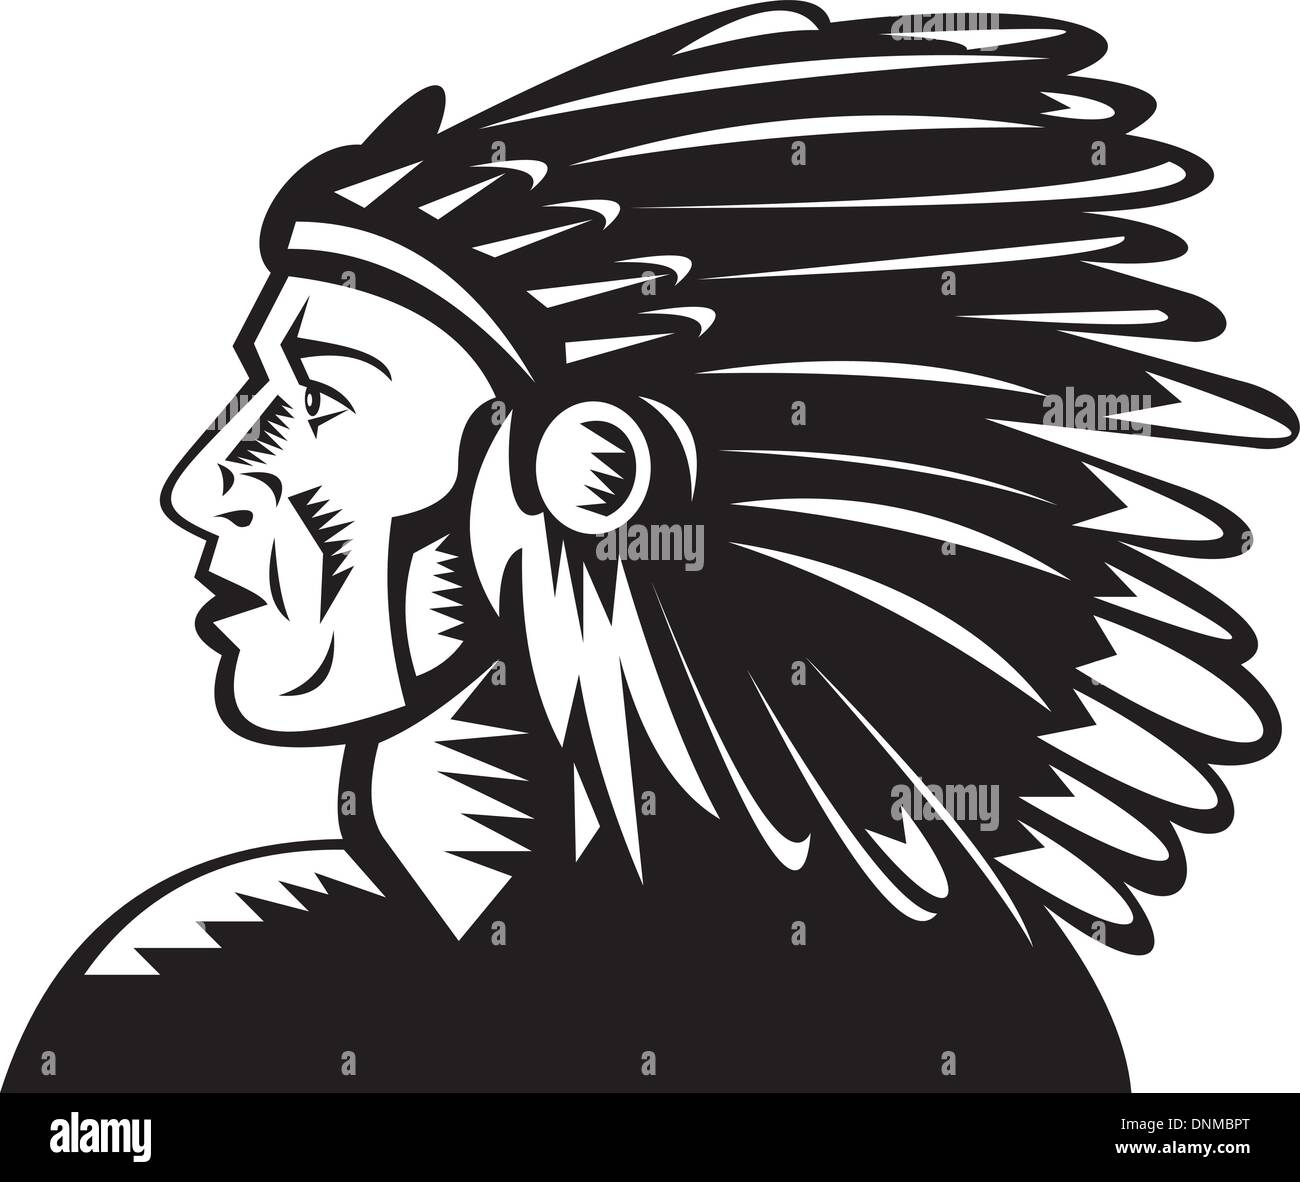 illustration of a native american indian chief with headdress - Stock Image